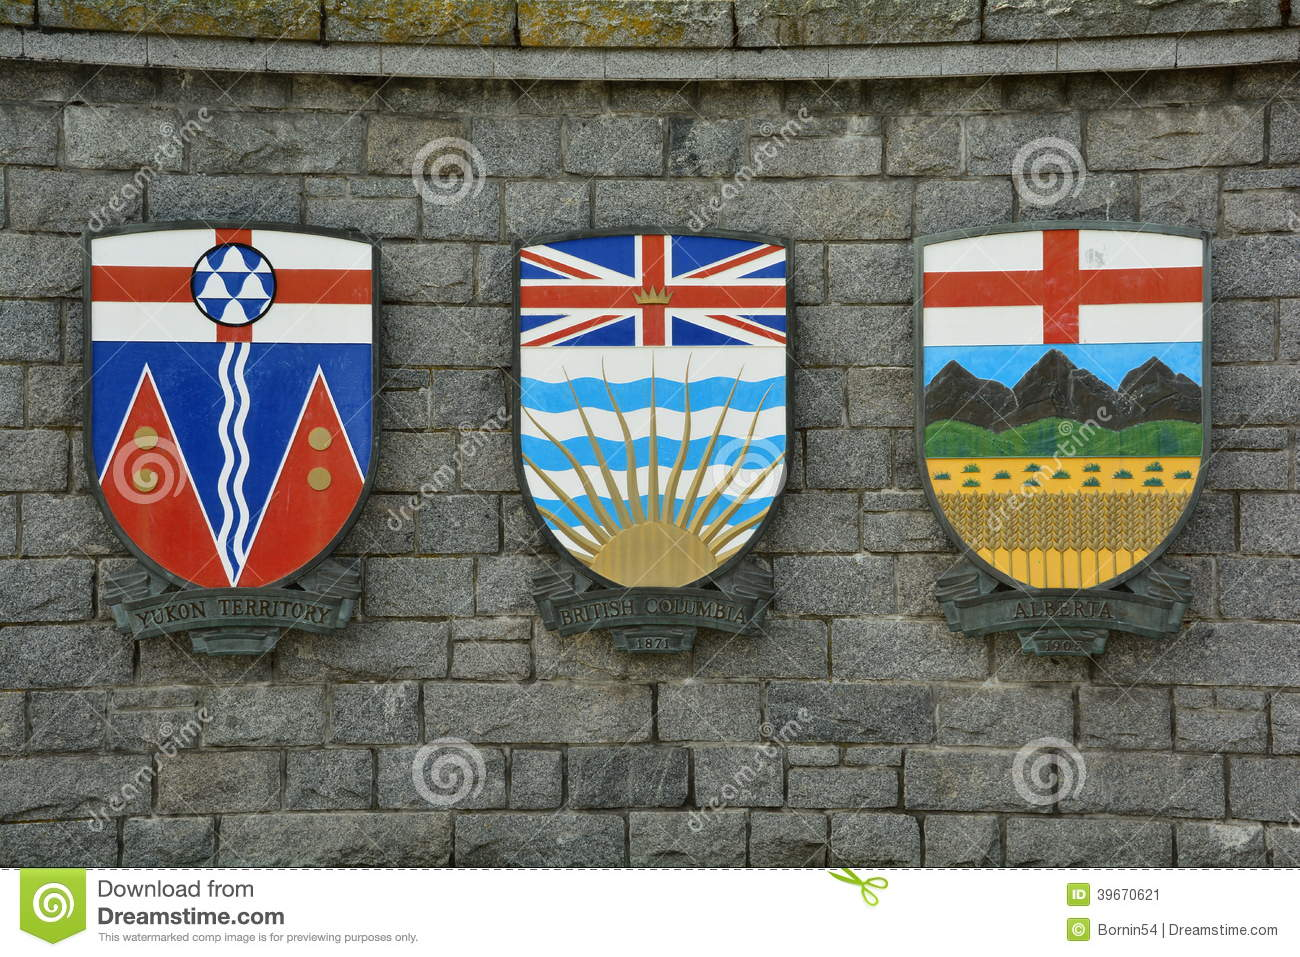 The Coat Of Arms For The Provinces Of Albertabritish Columbia And